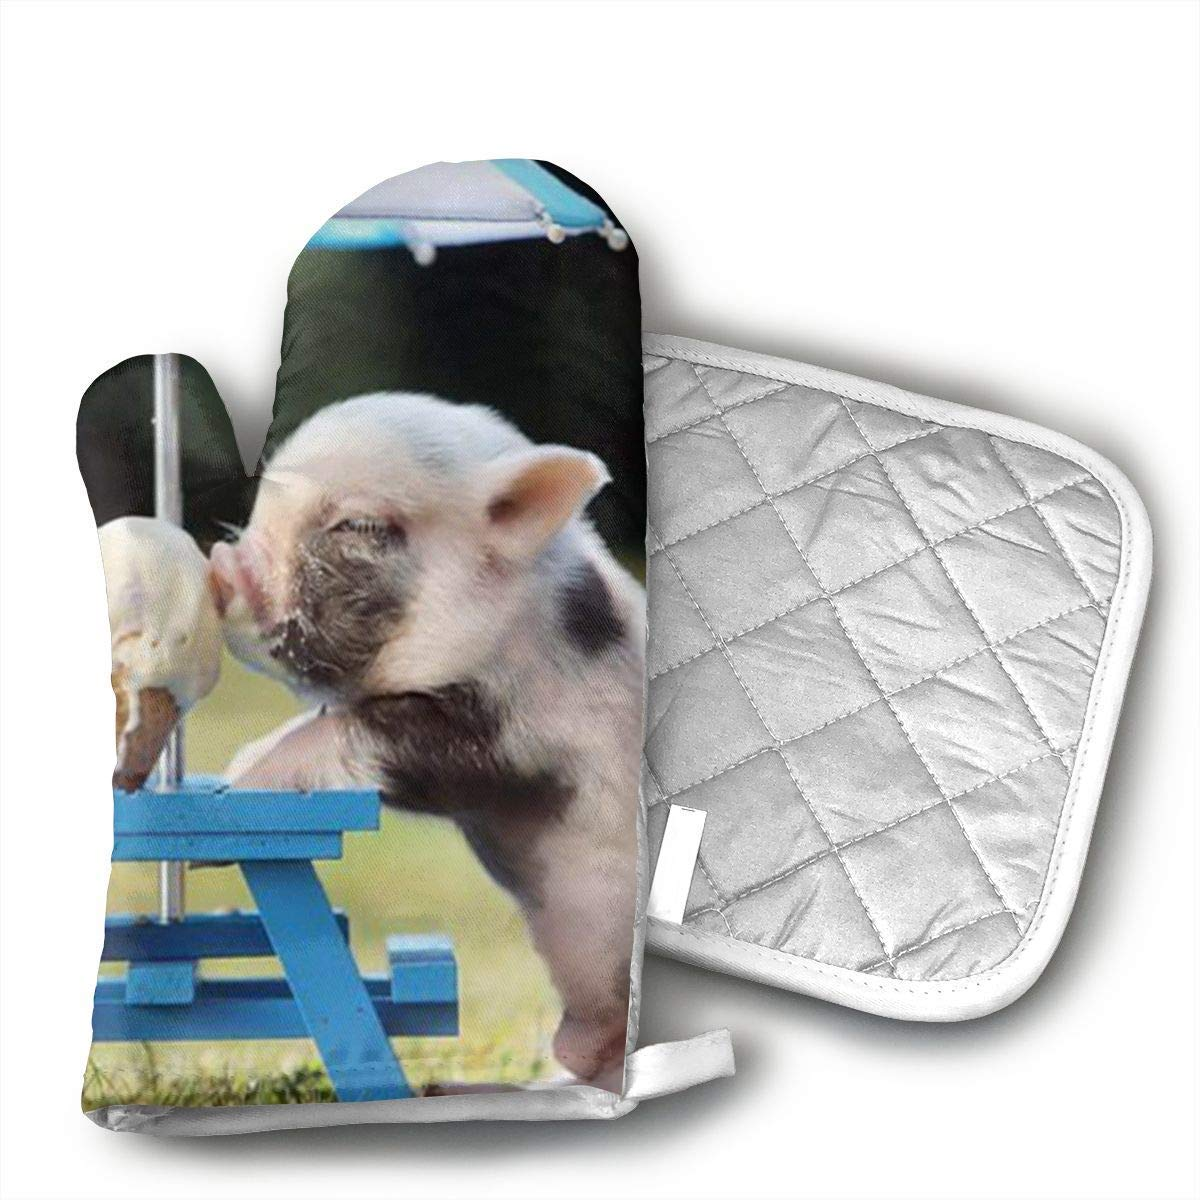 Cute Pig Eat Ice Cream Yourtablecloth Set of Oven Mitt and Pot Holder Or Oven Gloves-100% Cotton, High Heat Resistance, Superior Protection & Comfort¨CElegant Design